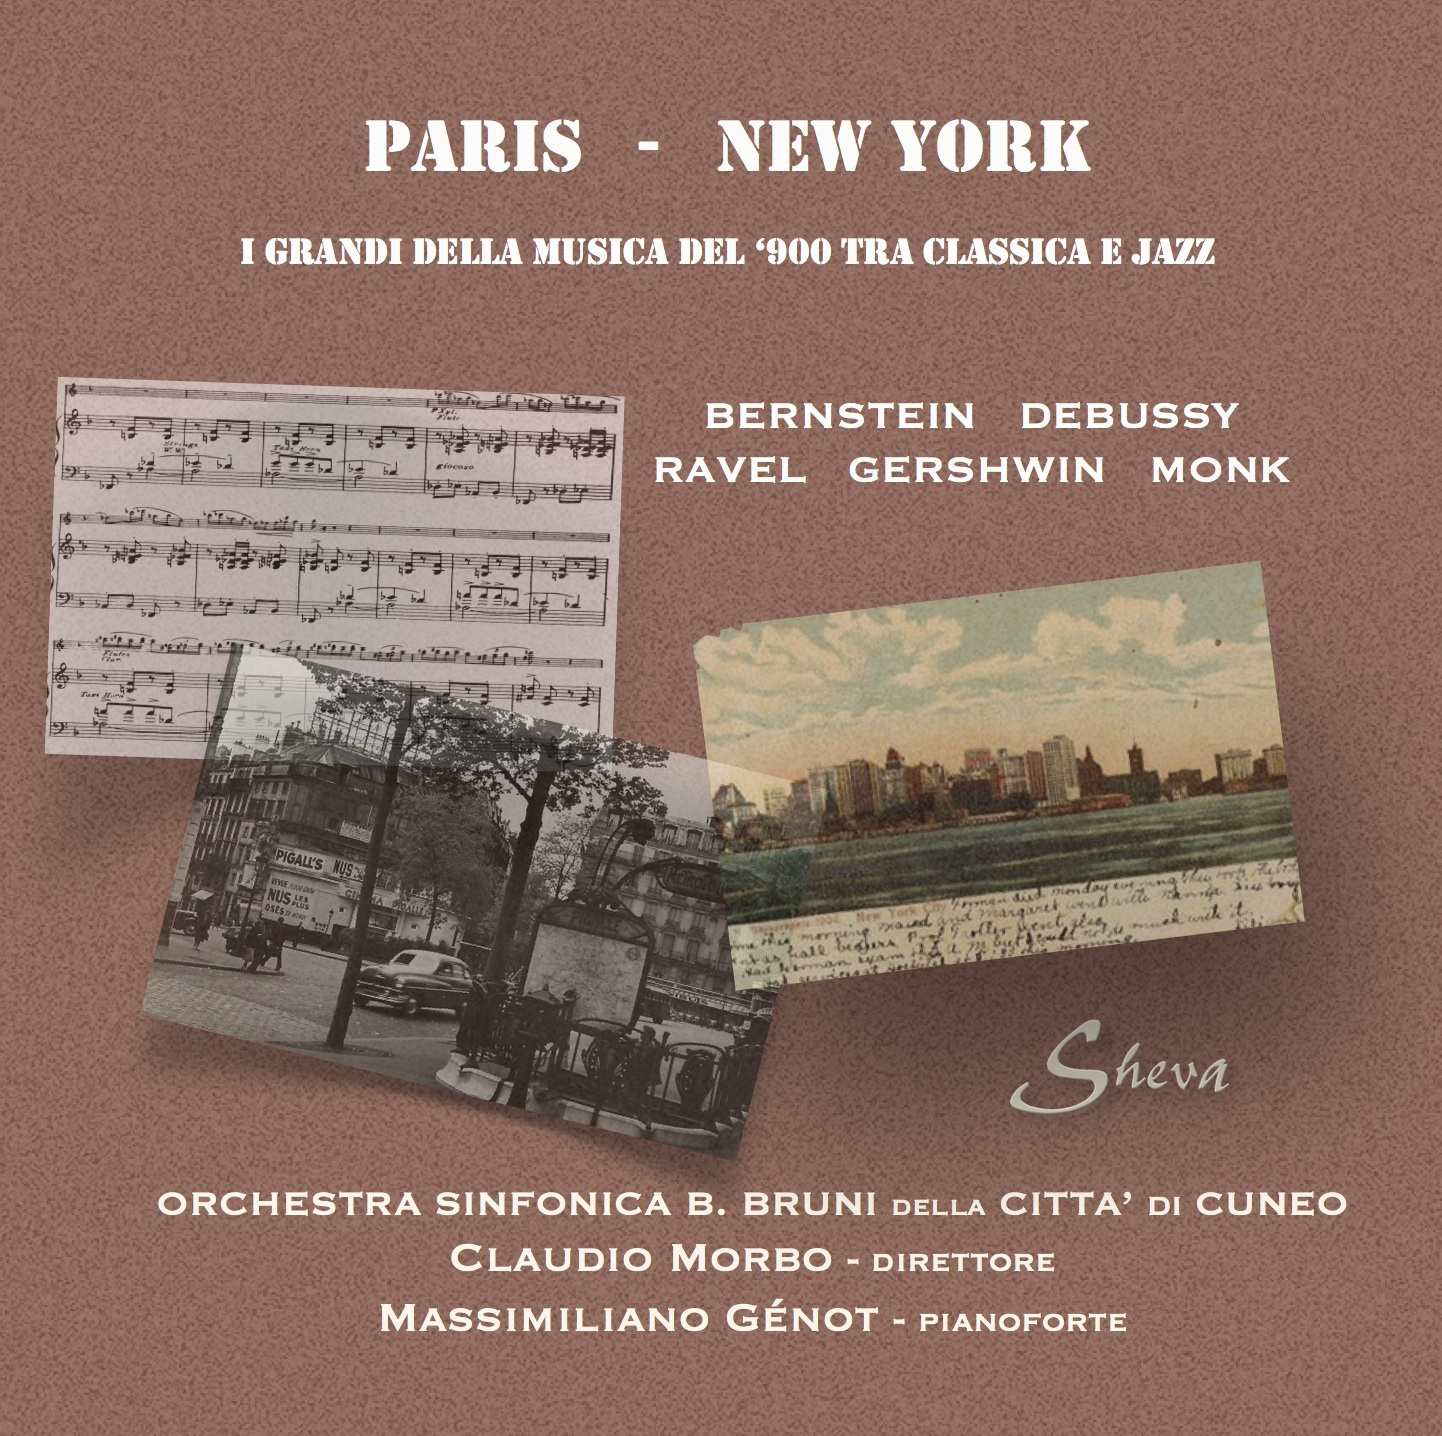 SHEVA 111 PARIS - NEW YORK Bernstein Debussy Ravel Monk Gershwin